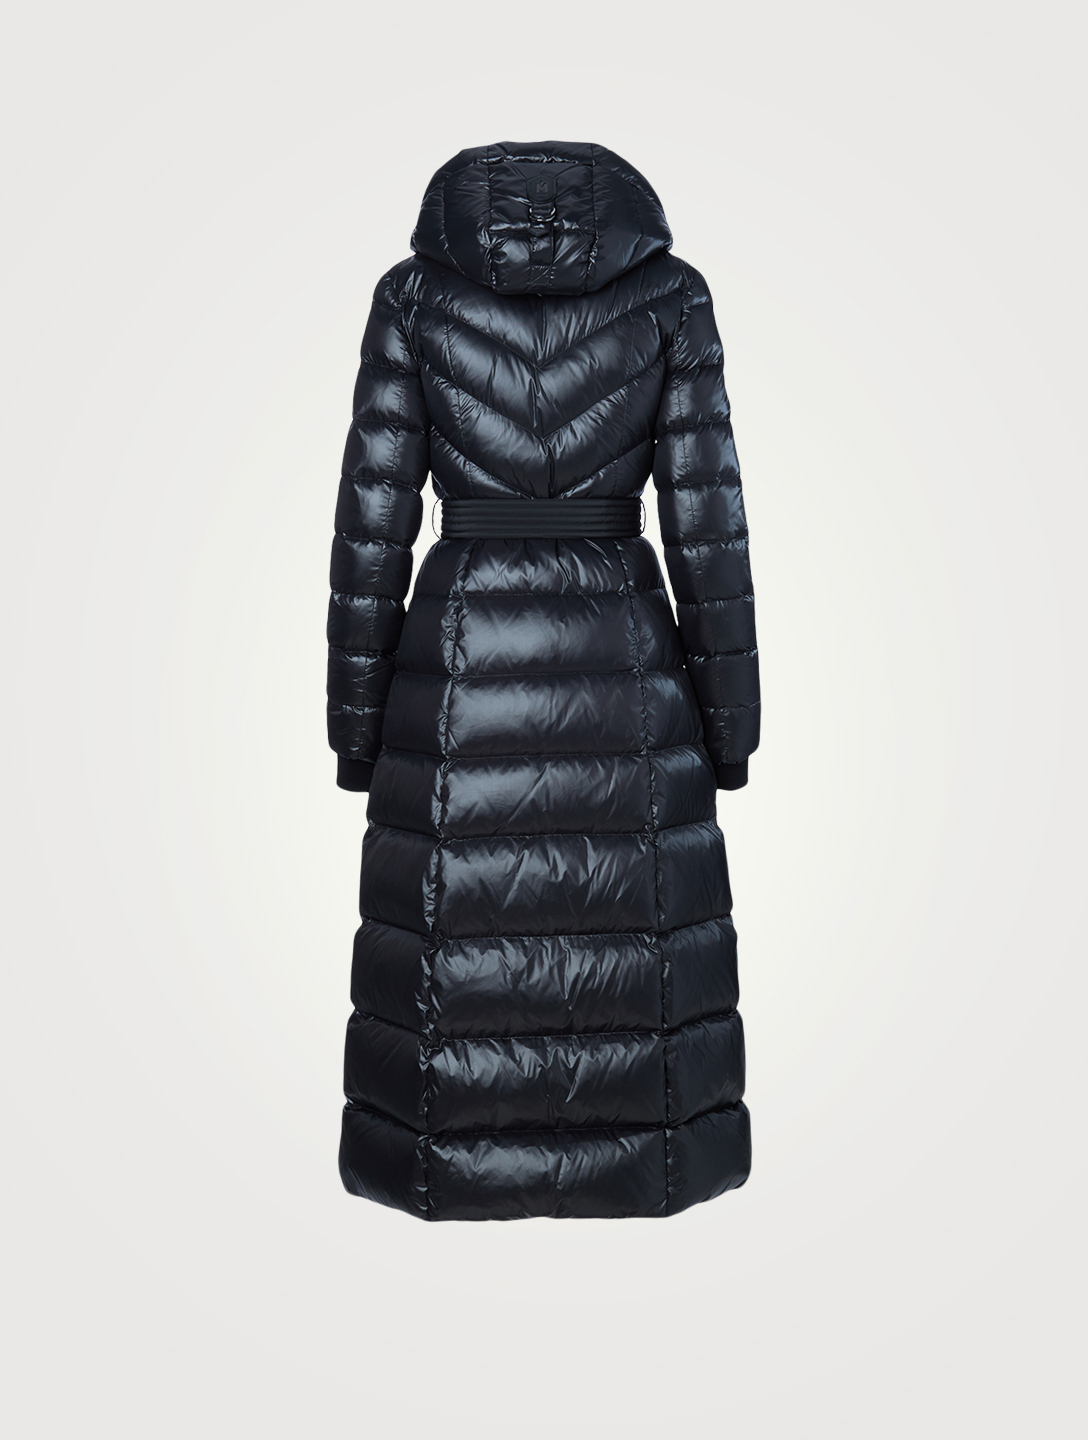 MACKAGE Calina Long Down Coat Women's Black